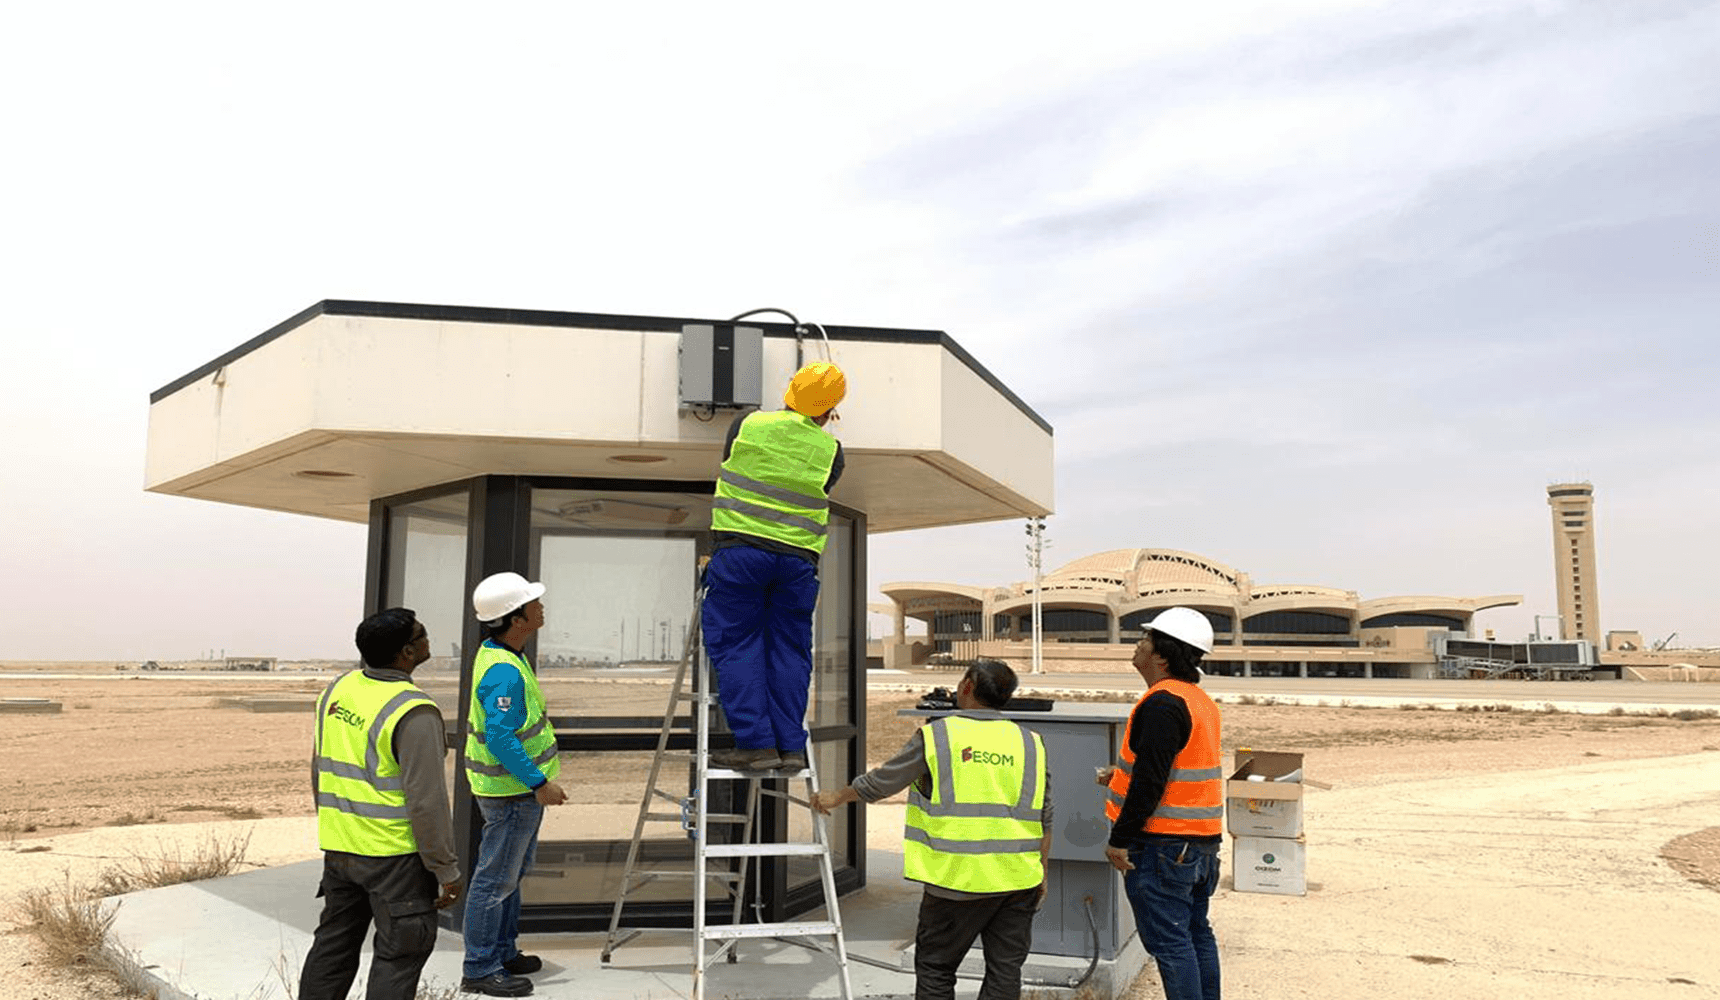 Oizom Team installing Polludrone Outdoor Air Pollution Sensor in Riyadh airport for monitoring ambient air quality.